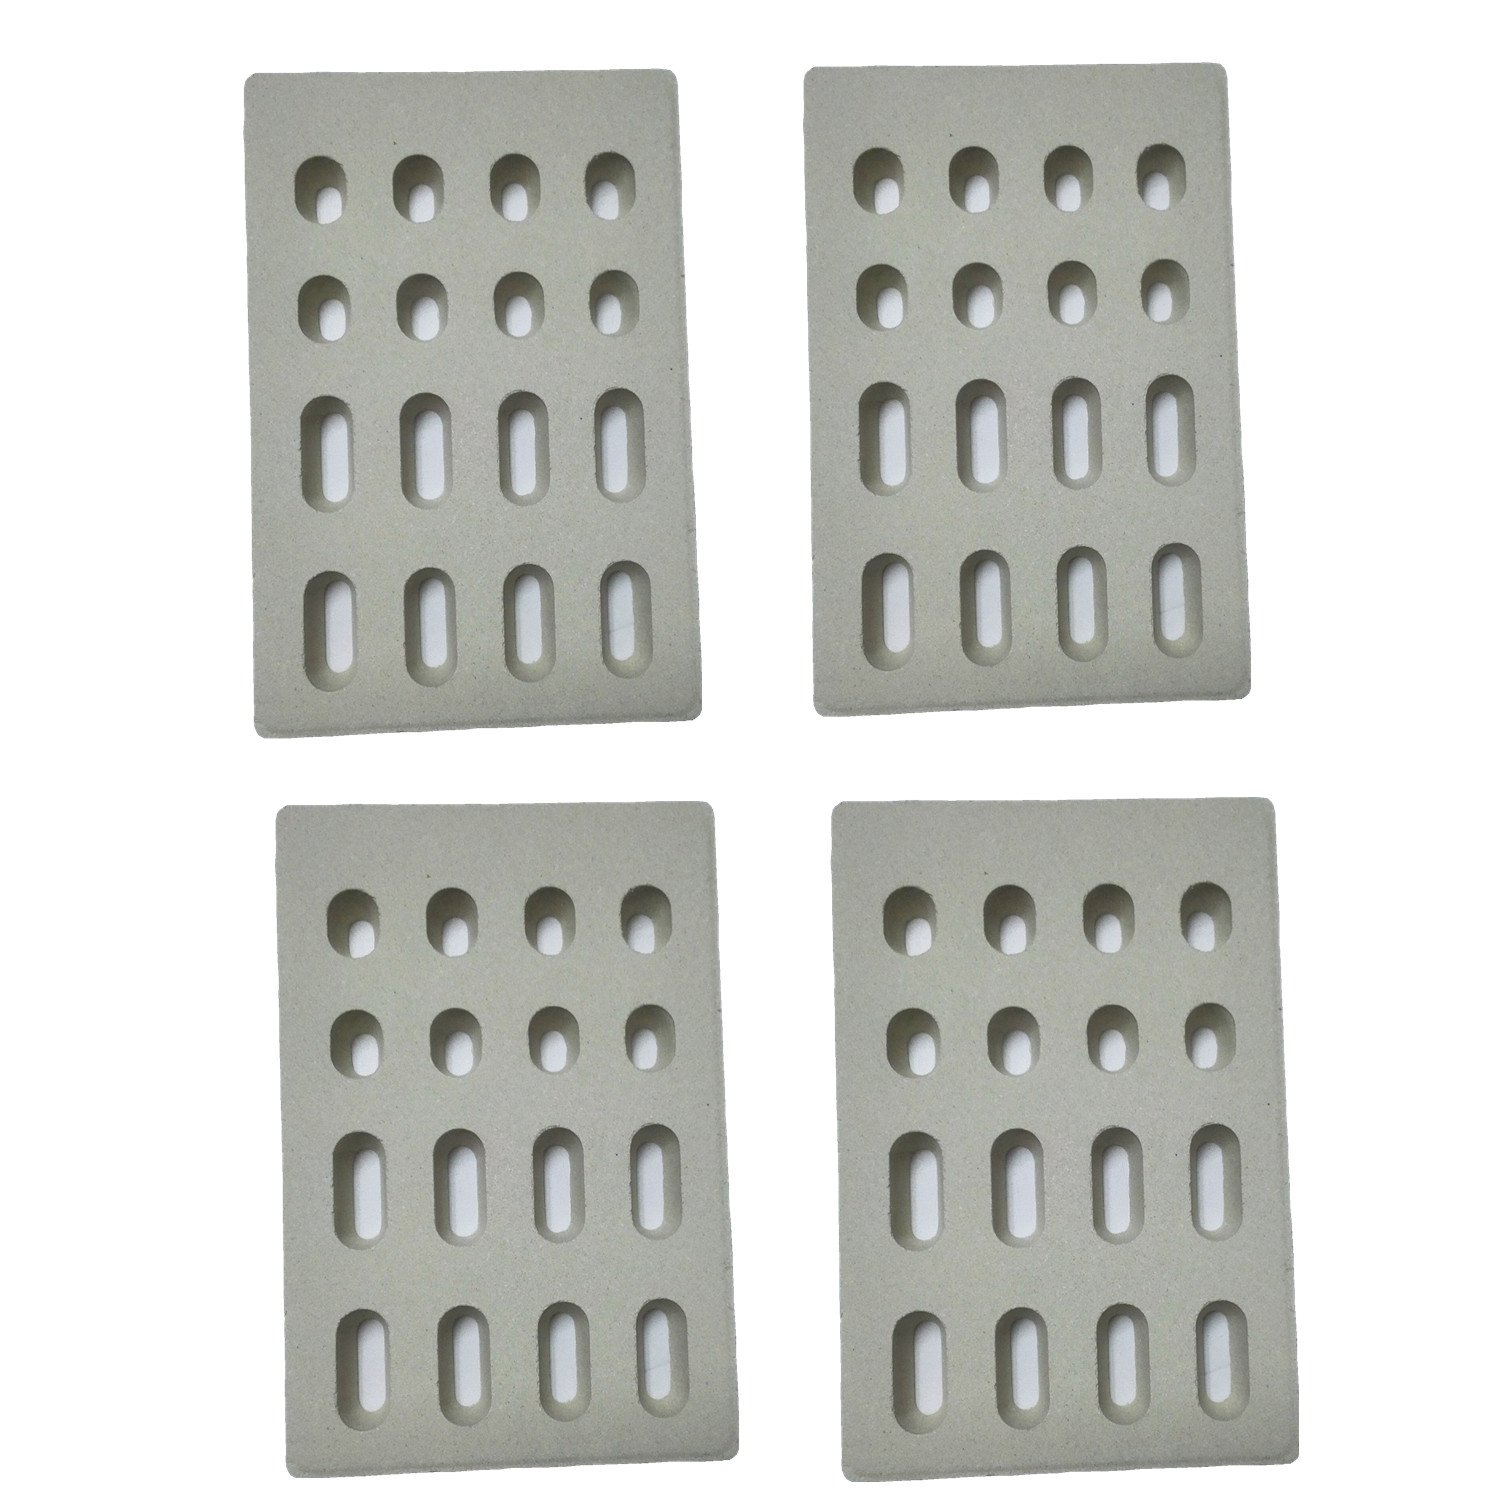 Broilmann 4-pack Universal Replacement Heat Plate Flame Tamer for Grand Turbo Grills, Ceramic Brick Flame Tamer(Dimensions: 7 1/16 L X 4 3/4 W X 1/2 H) by Broilmann